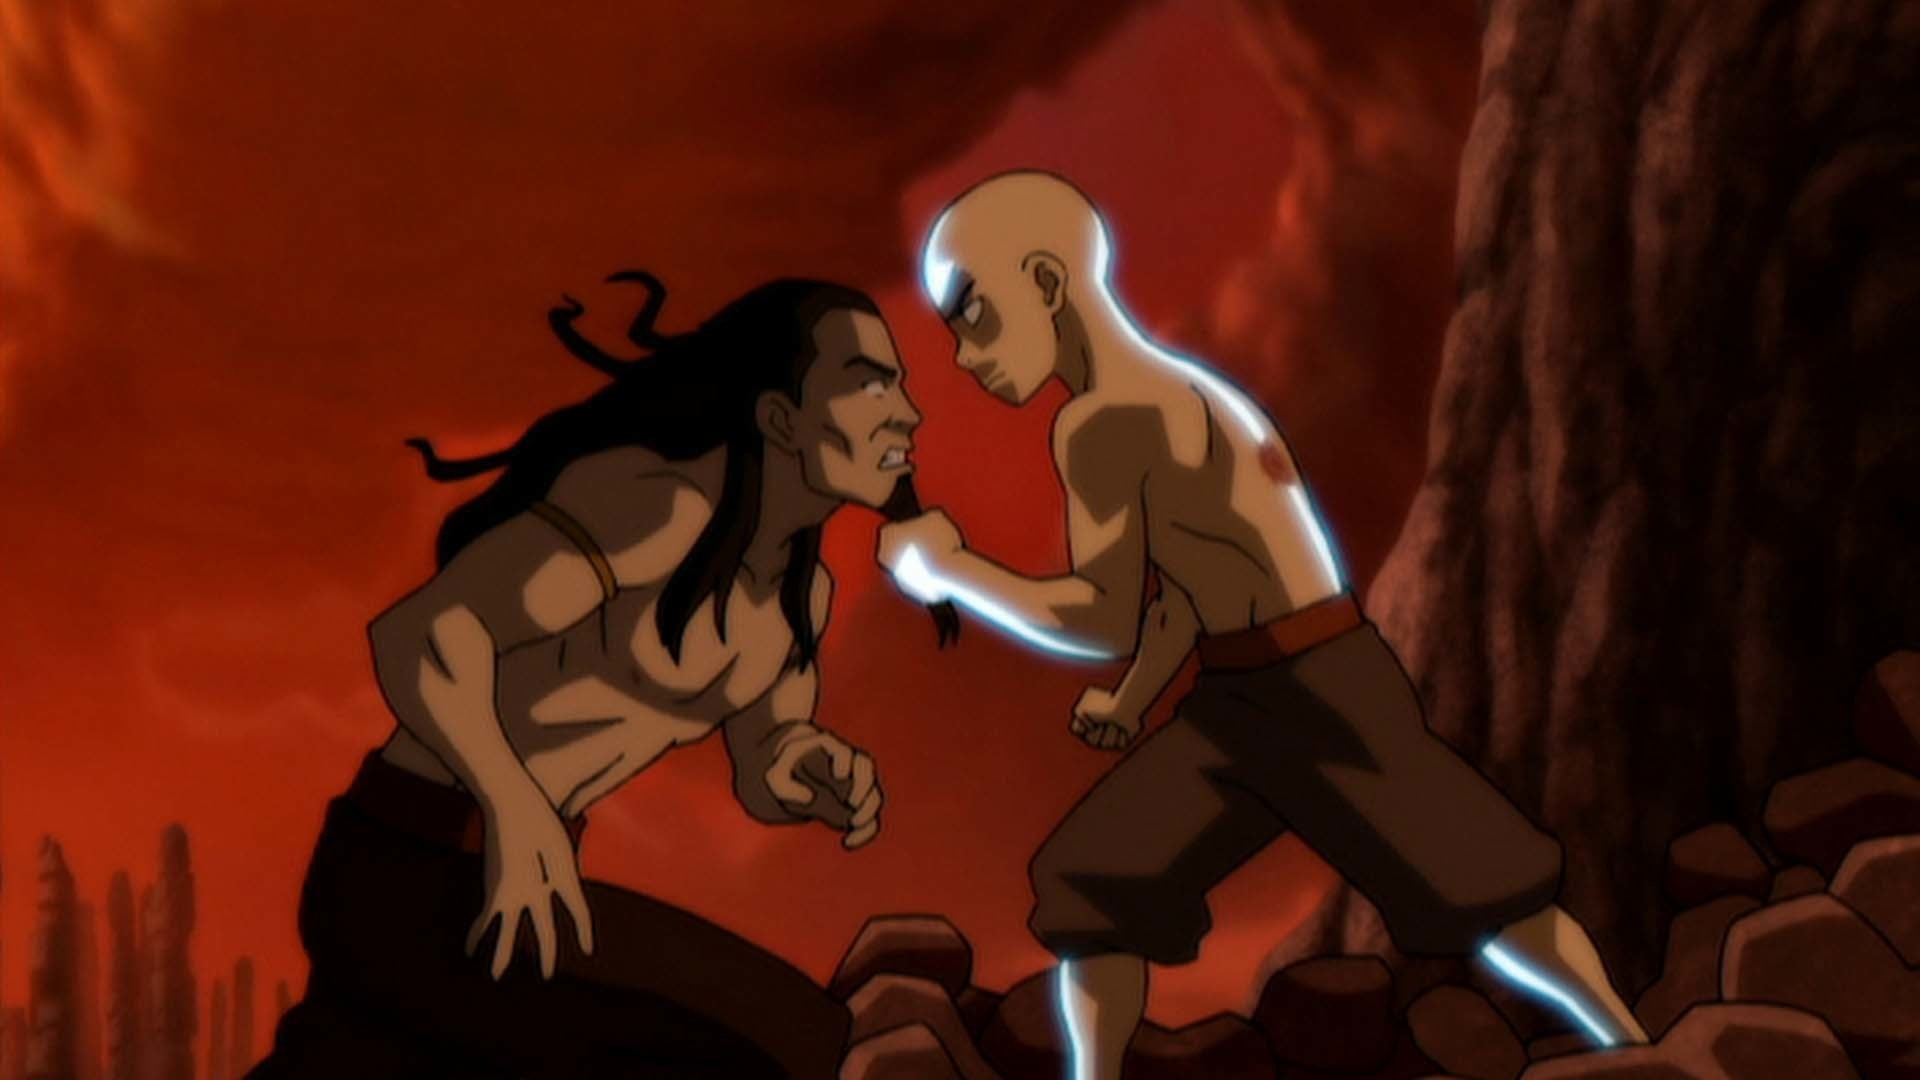 Sozin's Comet - Part 4: Avatar Aang